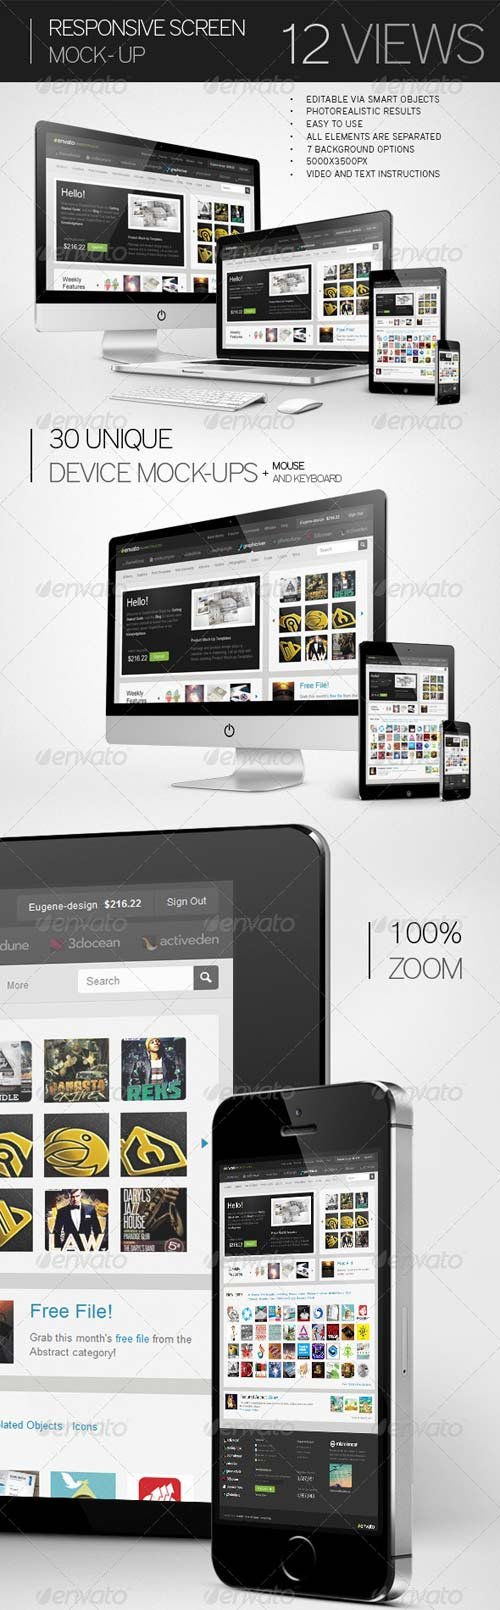 GraphicRiver Responsive Screen Mock-Up 7414672